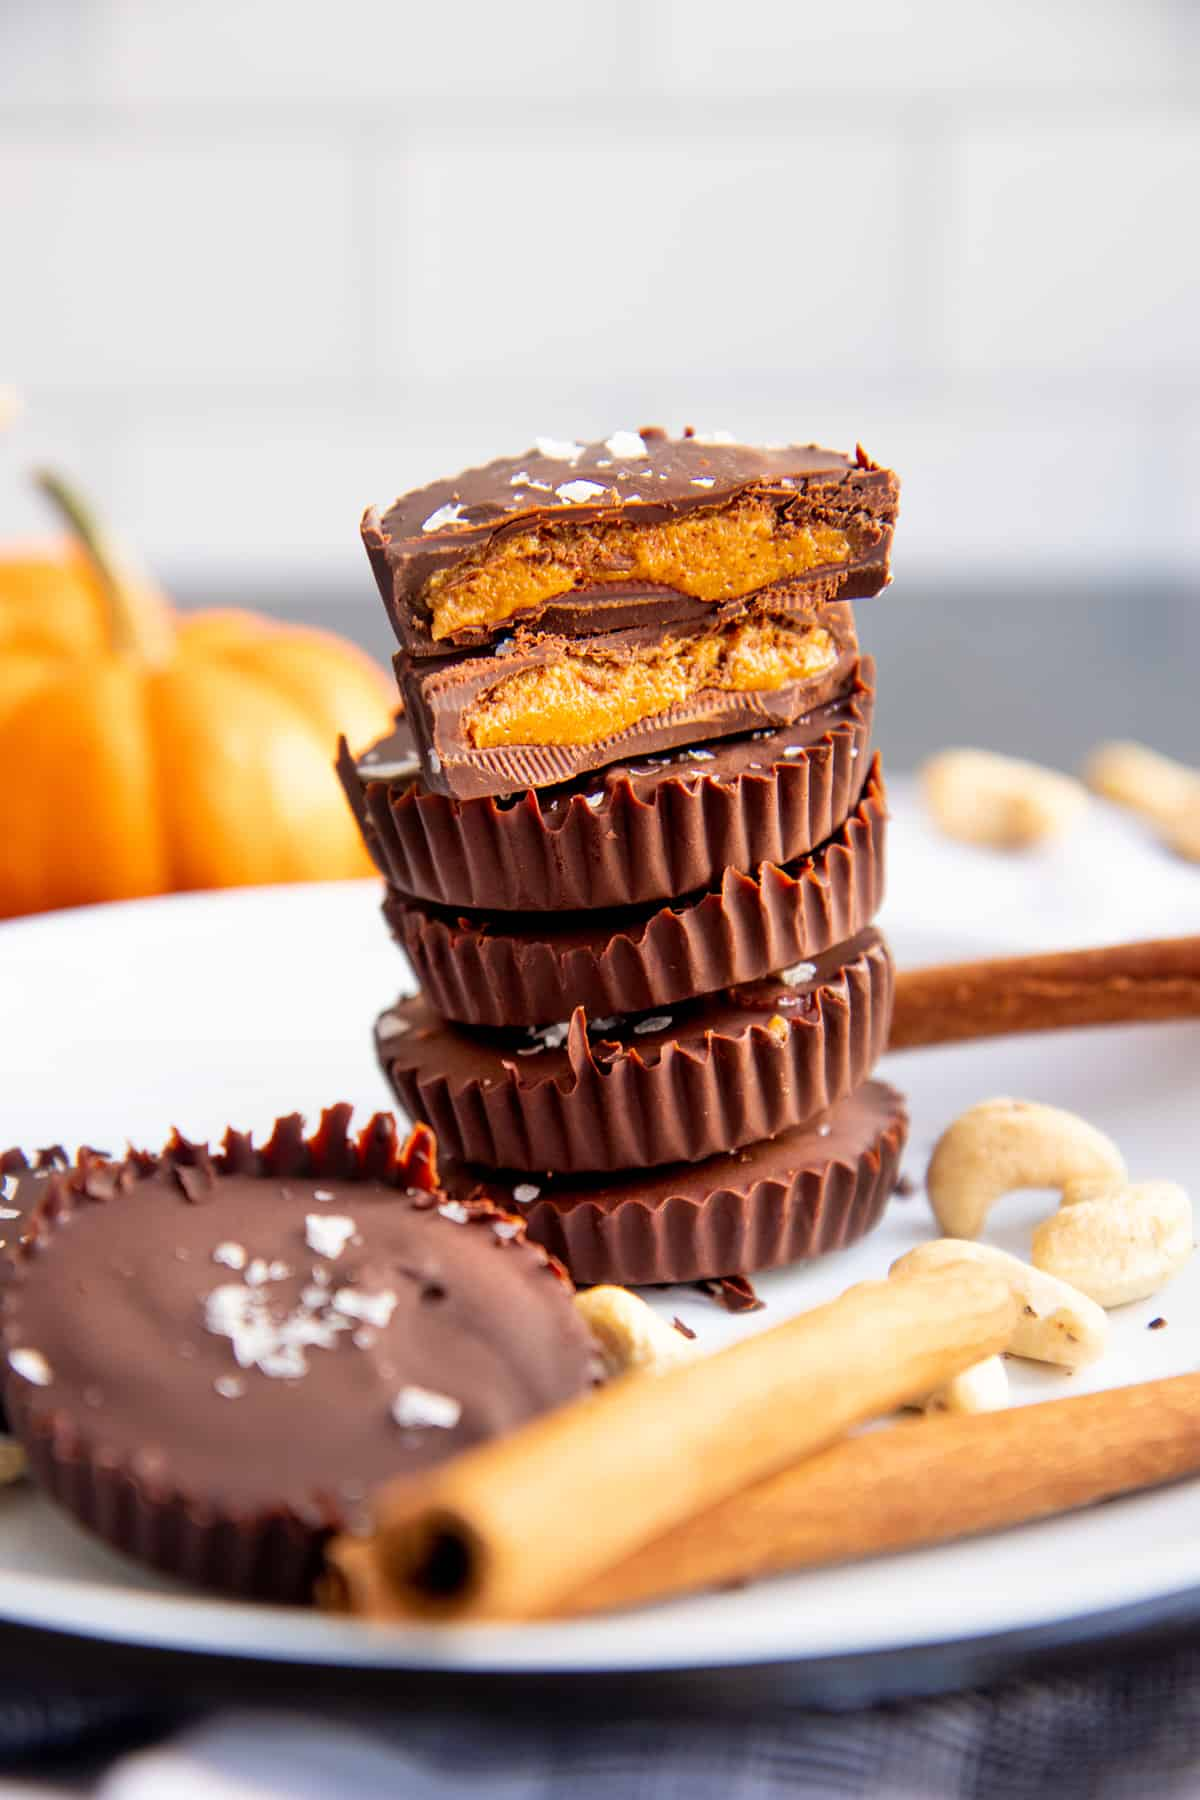 Stack of Pumpkin Spice Dark Chocolate Nut Butter Cups arranged on a white plate. One of the cups is cut in half to show the filling.